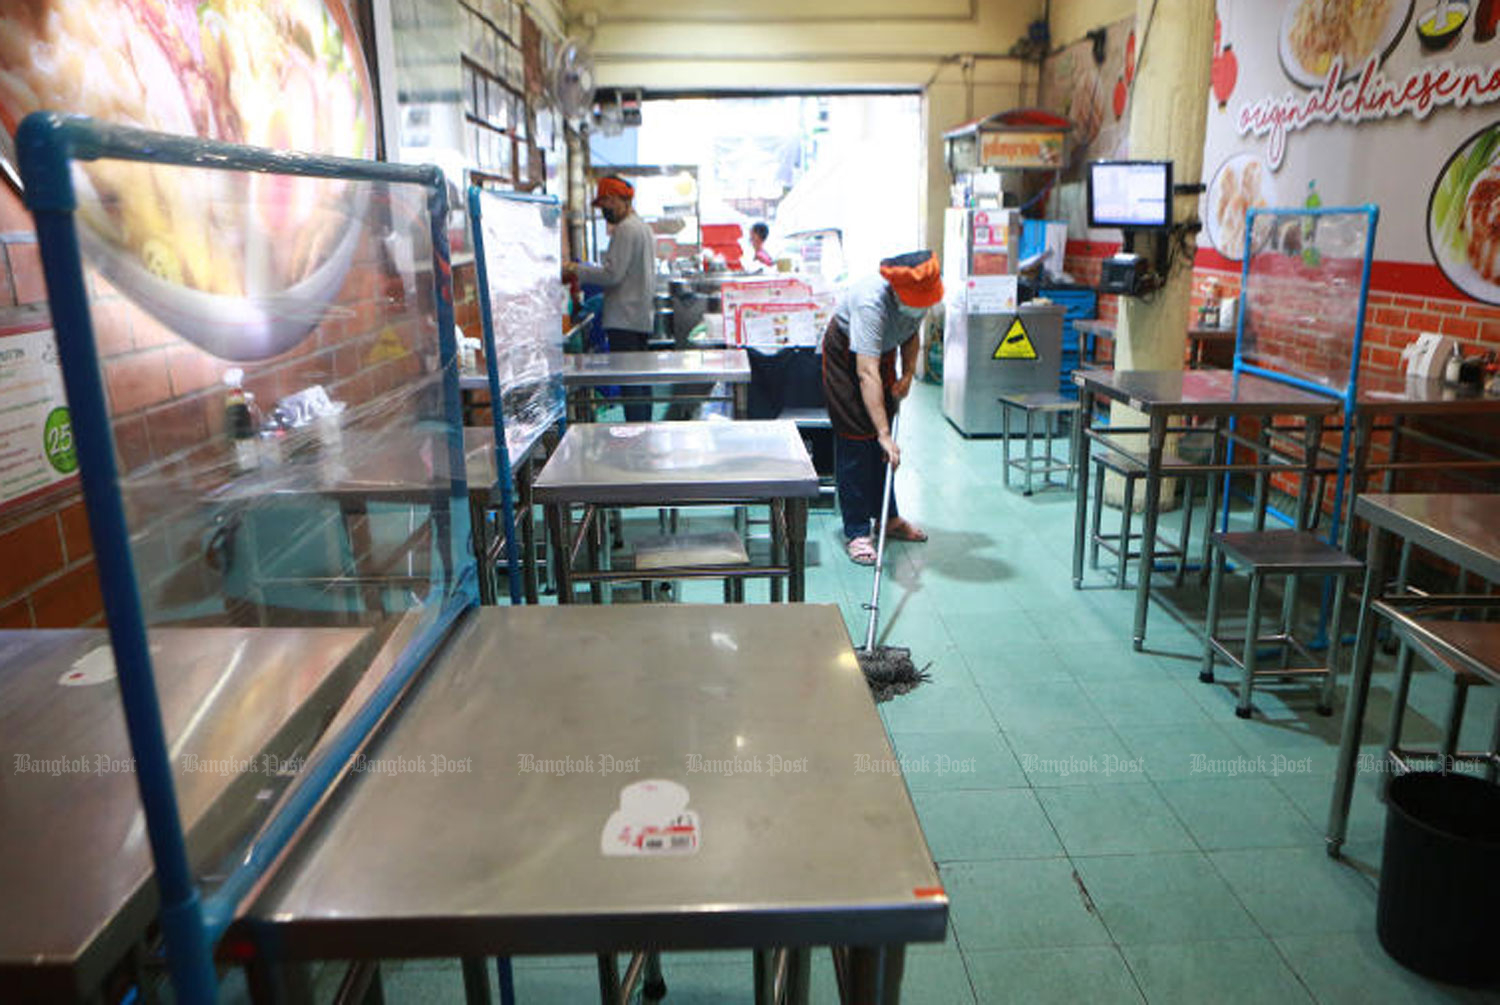 A woman cleans the floor of a food shop in Bangkok on Friday. Saturday is the first day no dining-in is allowed in the capital, as well as in other provinces in the dark red zone, as authorities step up efforts to contain the Covid-19 spread. Delivery and take-home orders are still allowed until 9pm. (Photo: Somchai Poomlard)